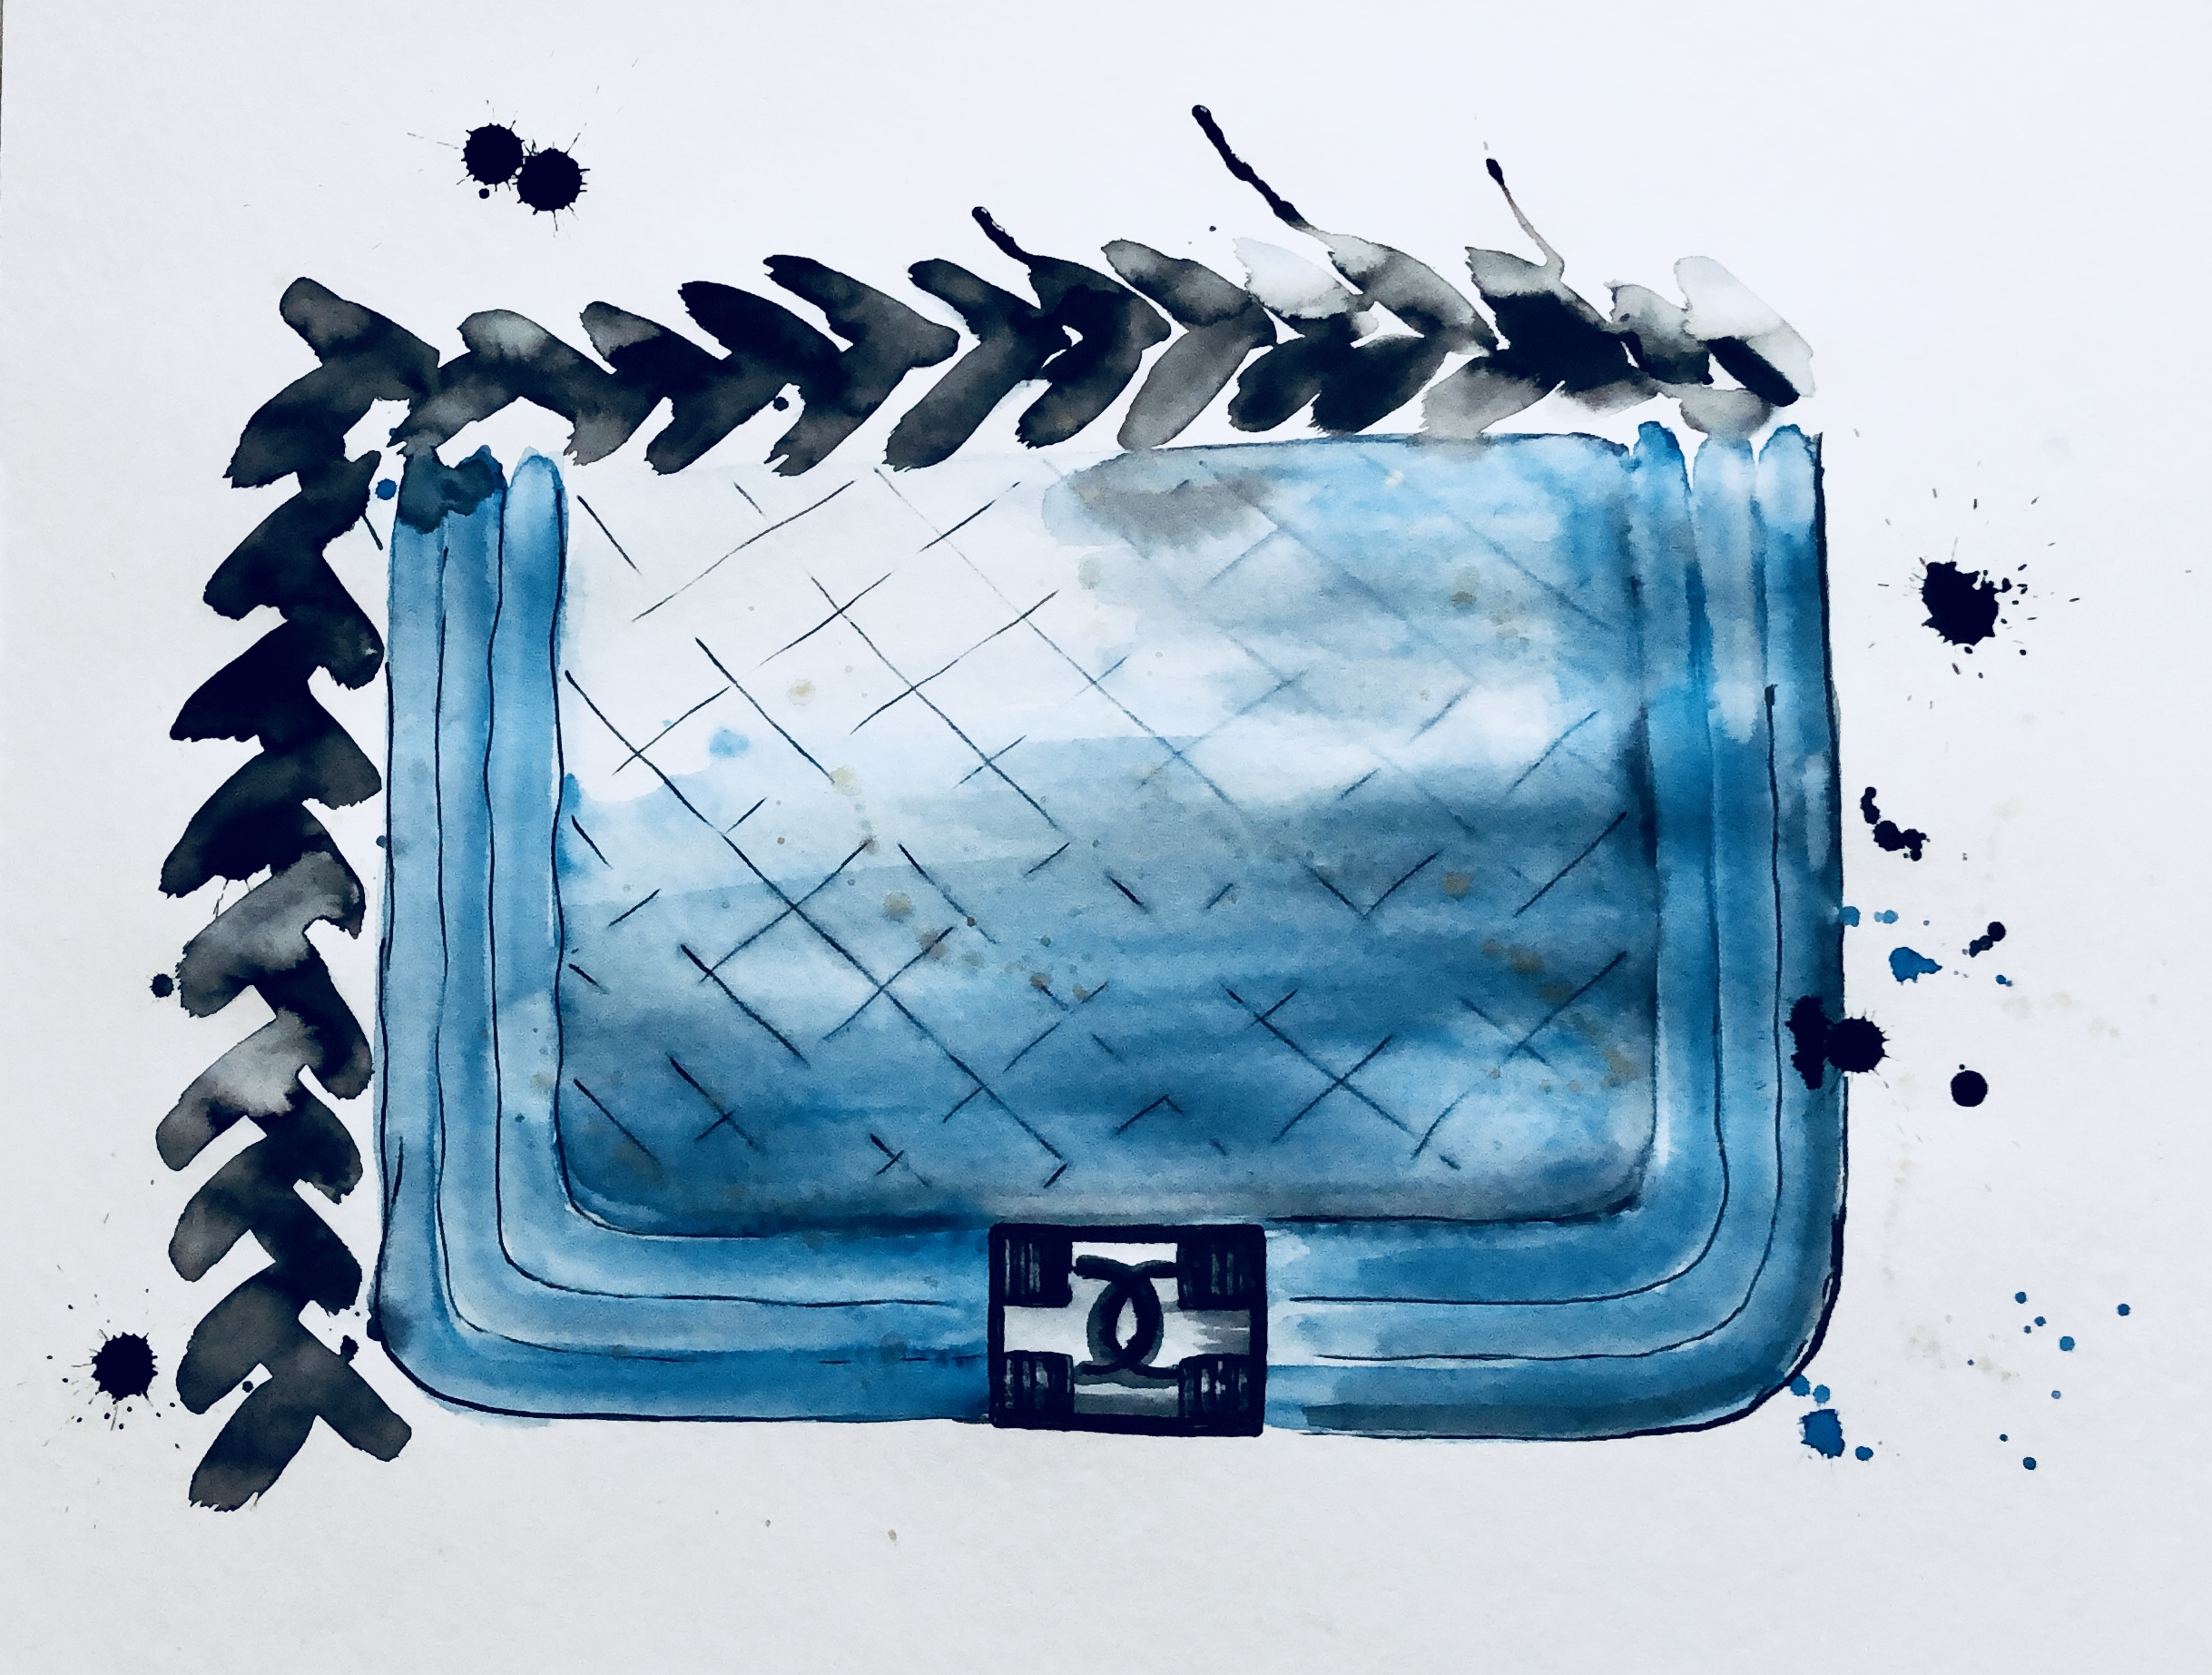 Chanel boy bag aquarelle on paper